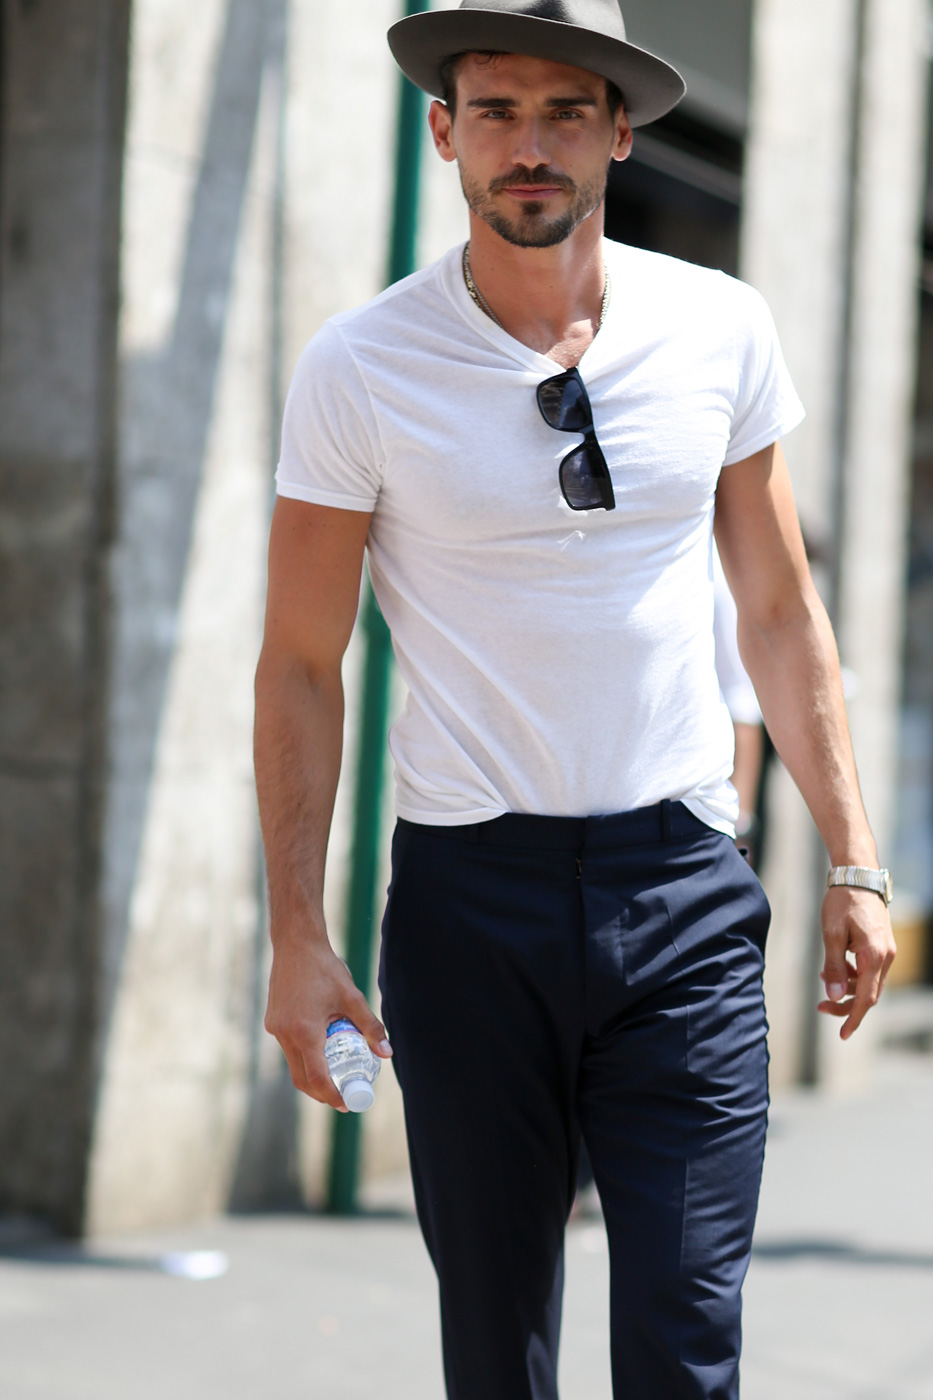 http://theimpression.com/wp-content/uploads/2014/06/mens-fashion-street-style-milan-day-1the-impression-spring-2015-010.jpg